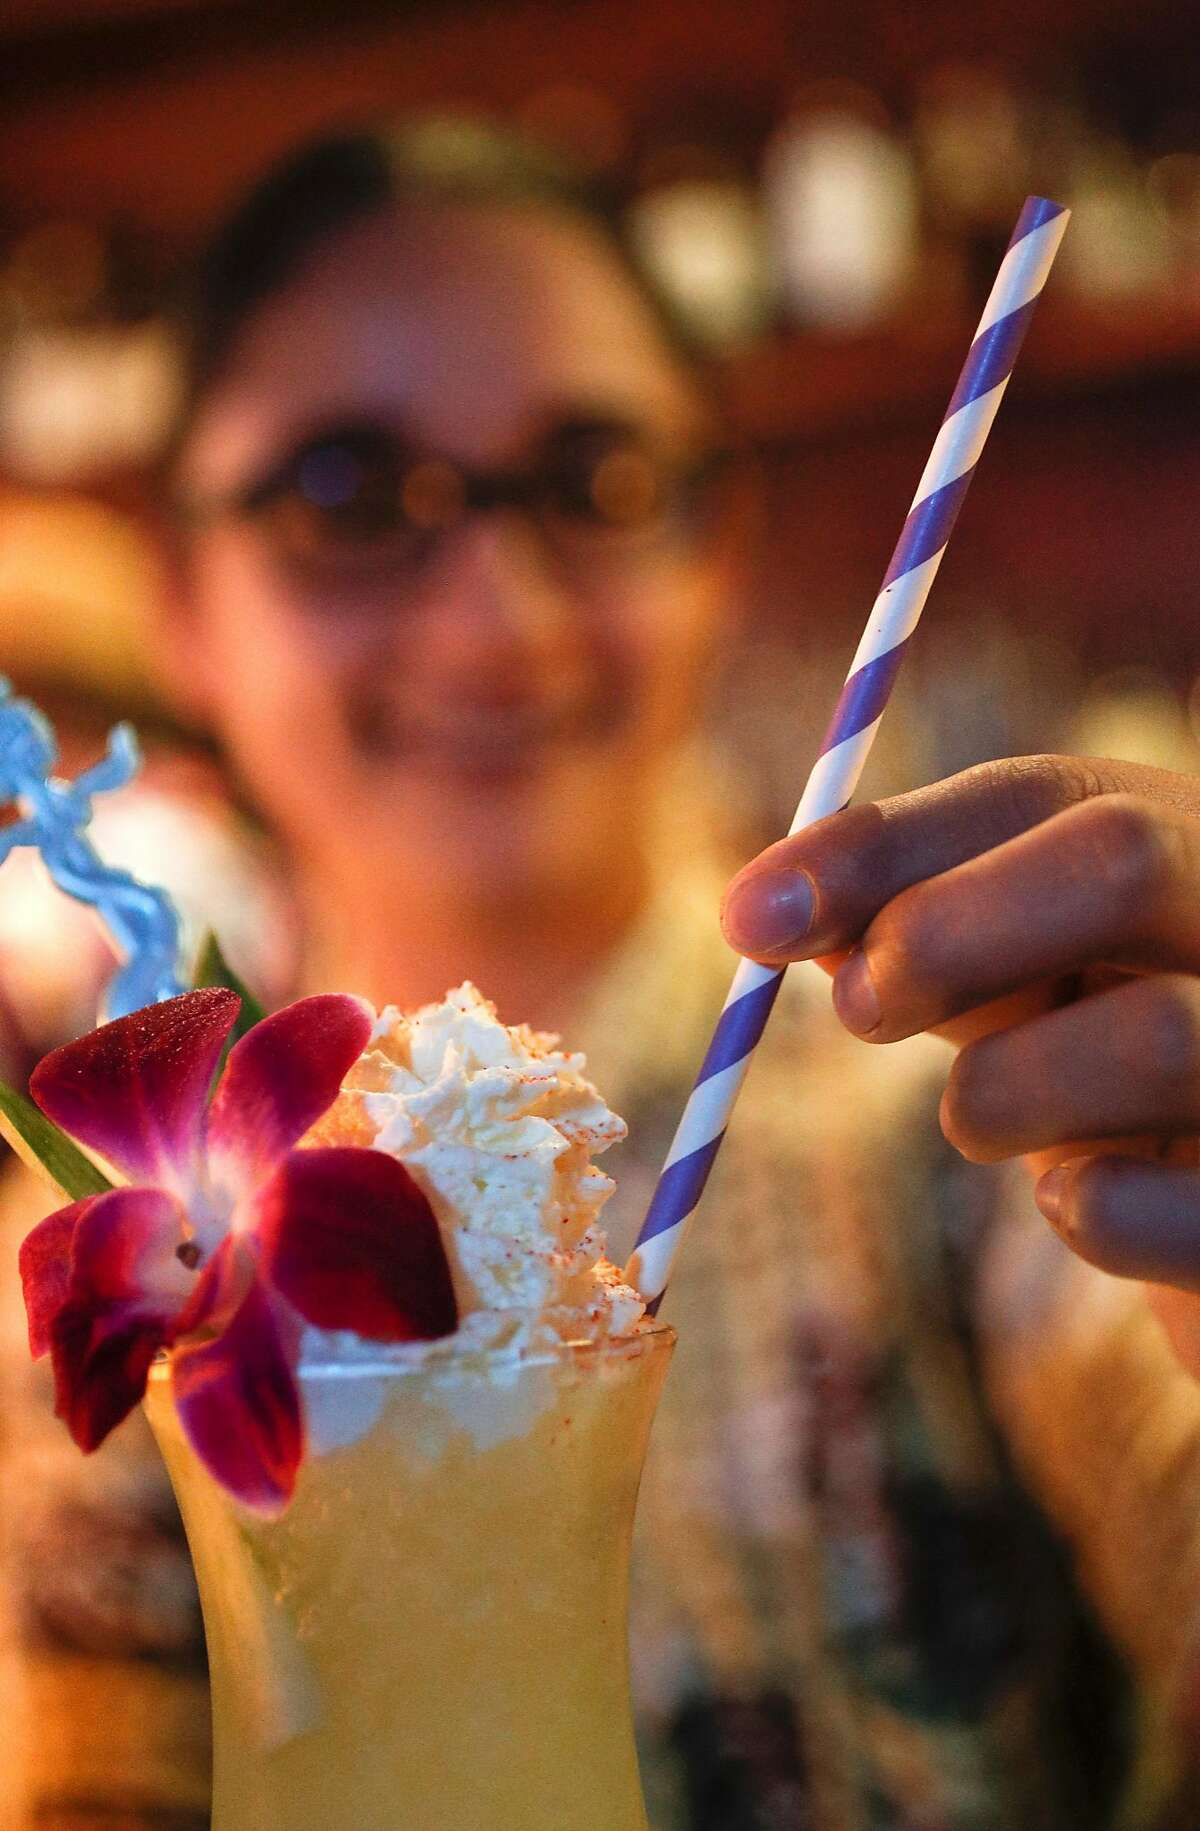 Bartender Maritza Rocha serves an island inspired cocktail along with a paper straw at the Pagan Idol where they have been using paper straws in their drinks for the past one and a half years, as seen on Friday, Jan. 19, 2018 in San Francisco, Calif. There is a bill in California is passed would ban plastic straws at dine-in restaurants unless a customer asks for one.